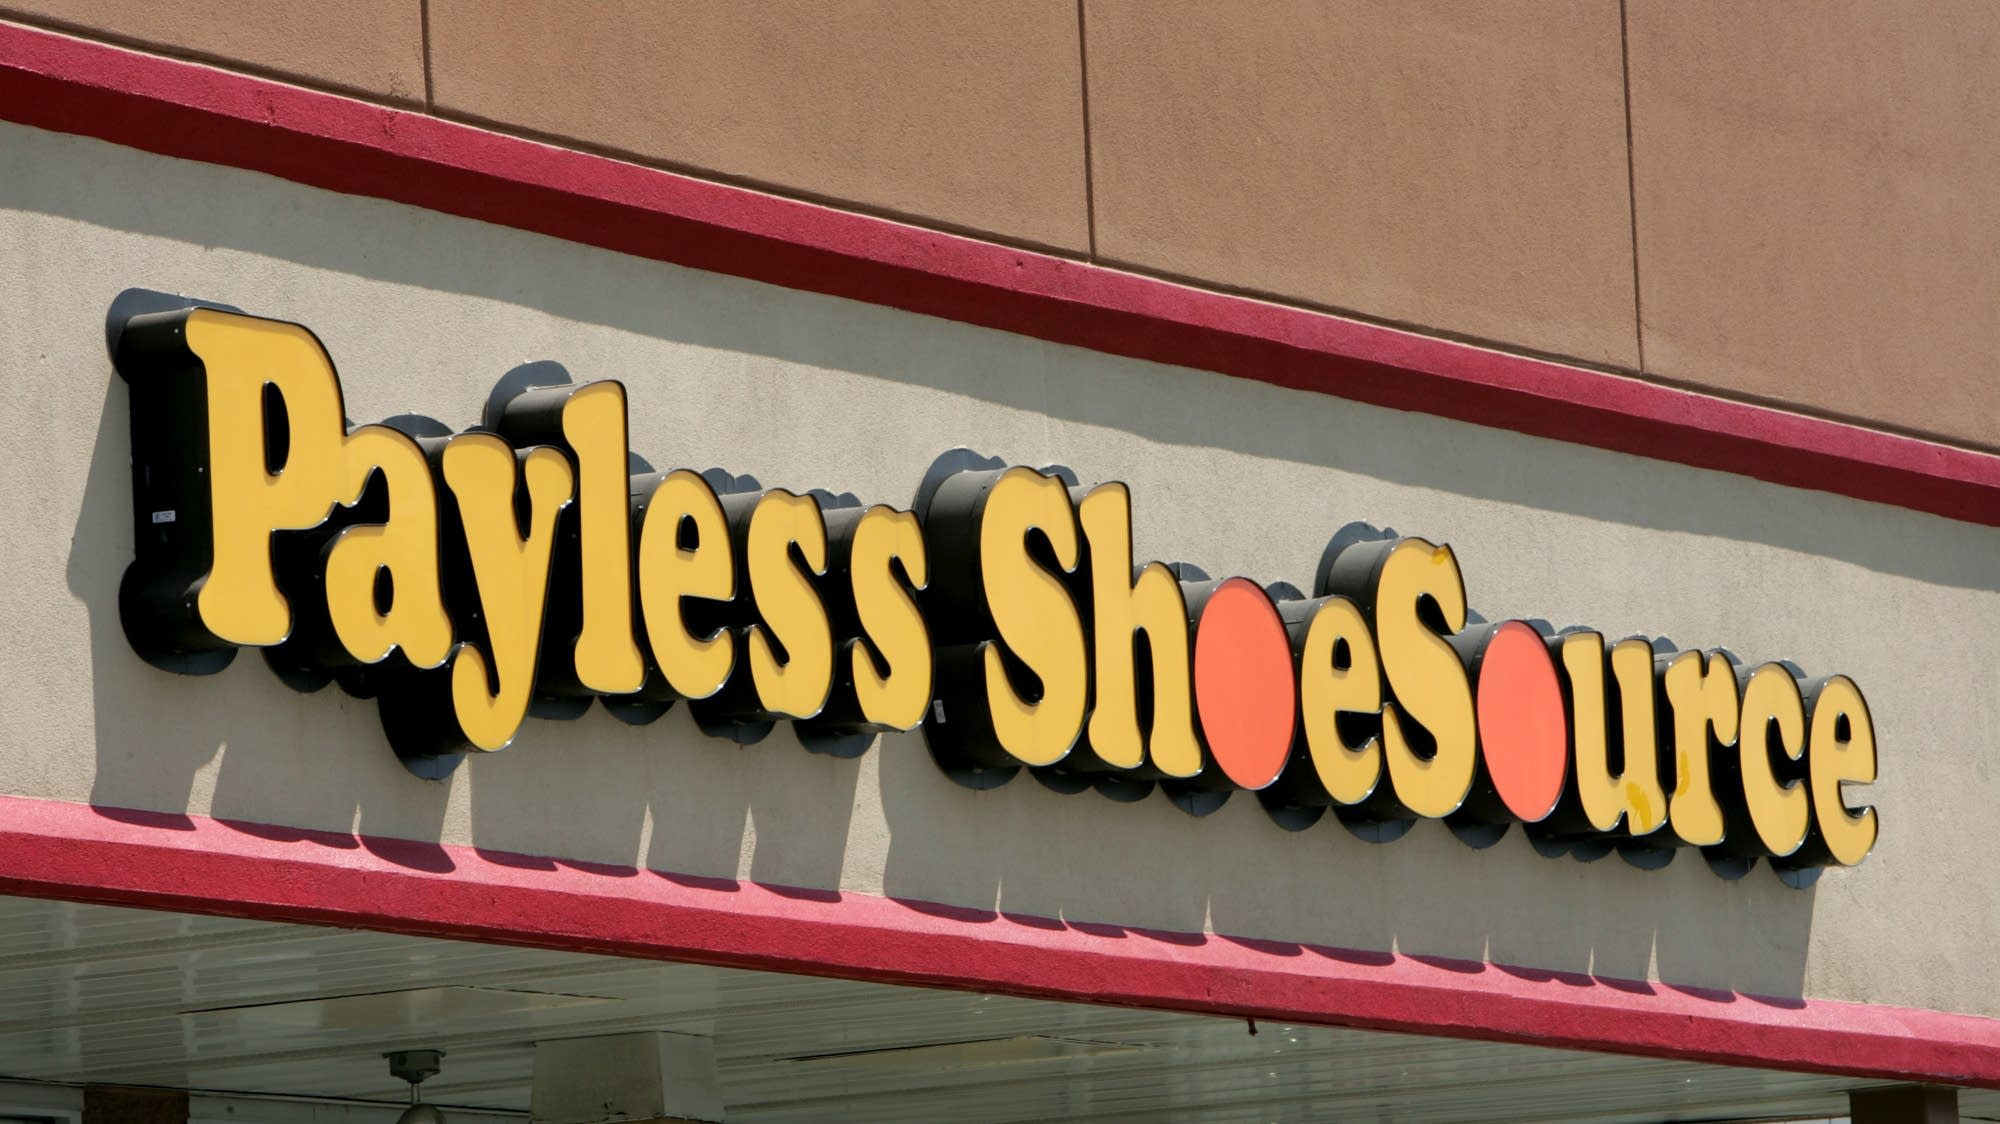 Payless ShoeSource storefront in Philadelphia